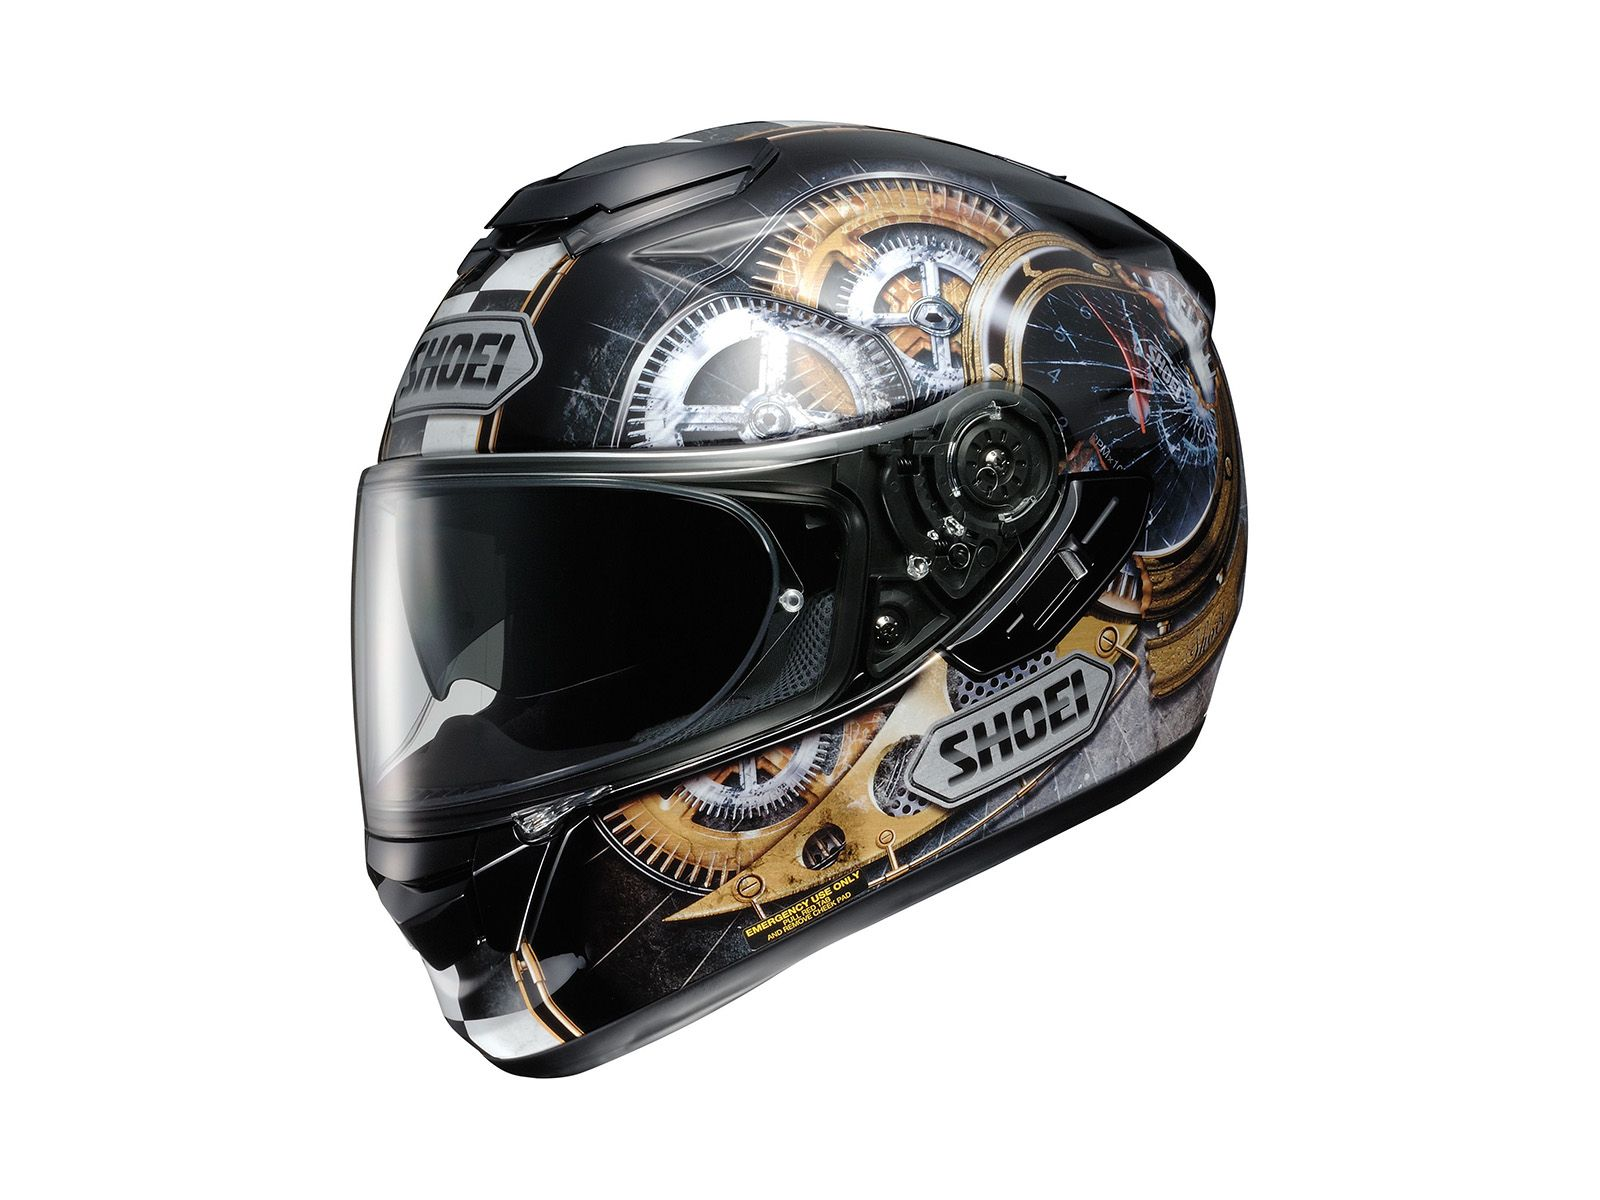 Shoei Gt Air >> Fabricant de casque haut de gamme SHOEI - moto scooter ...